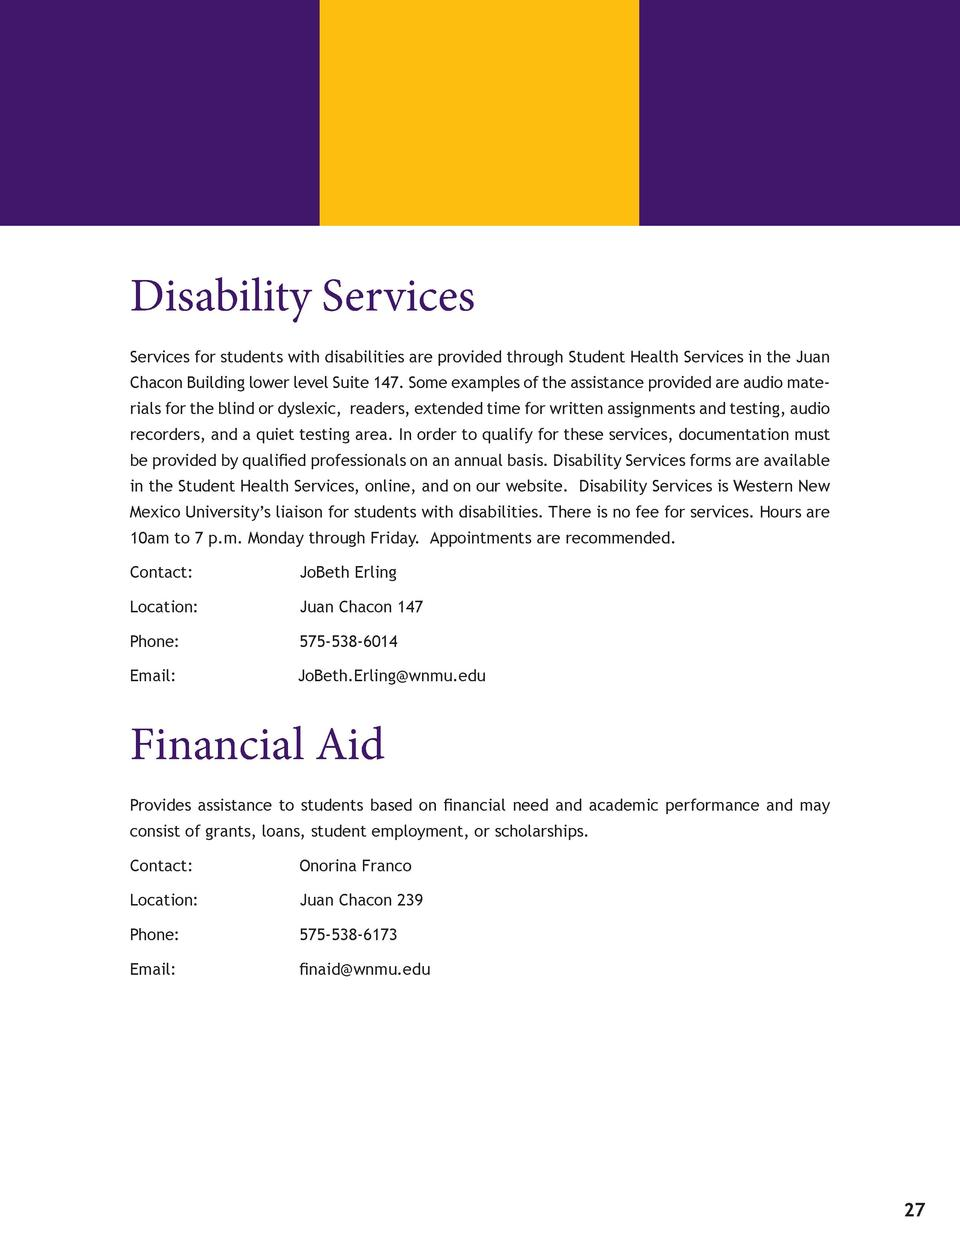 Disability Services Services for students with disabilities are provided through Student Health Services in the Juan Chaco...